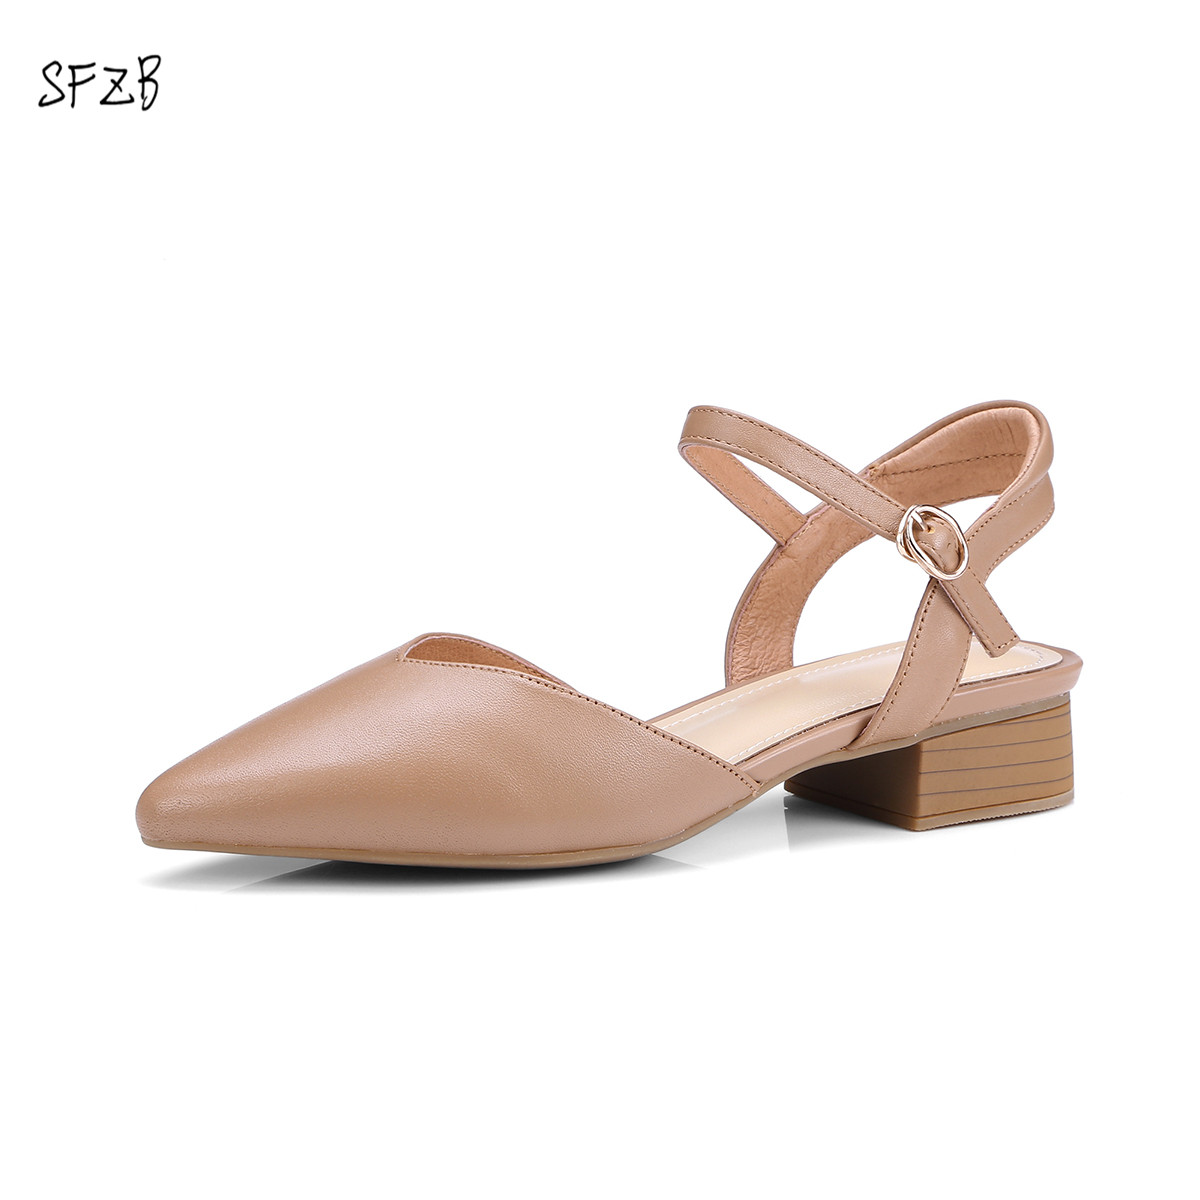 SFZB Shoes Soft Leather Square Heels For Summer Basic Causal Style Handmade Quality Shoes For Woman Size 35-40